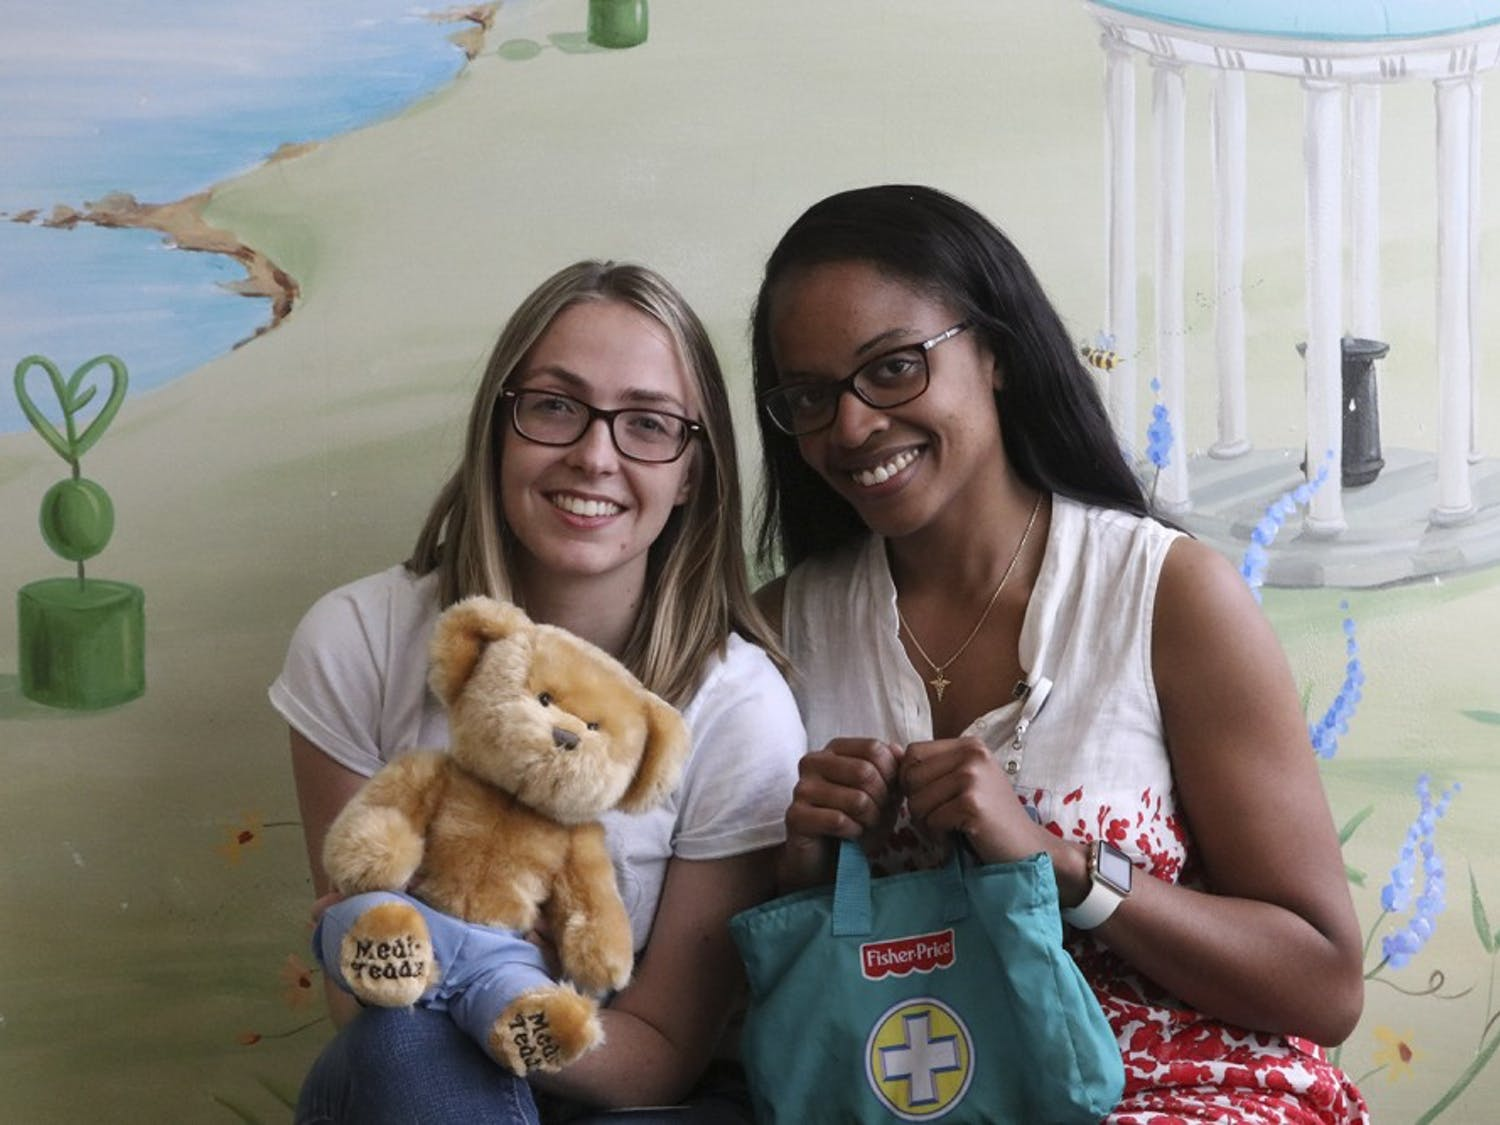 Medical students Charlotte Story (left) and Ashley Thrower started a fundraiser to buy more Medical Play Kits for children recently diagnosed with cancer.